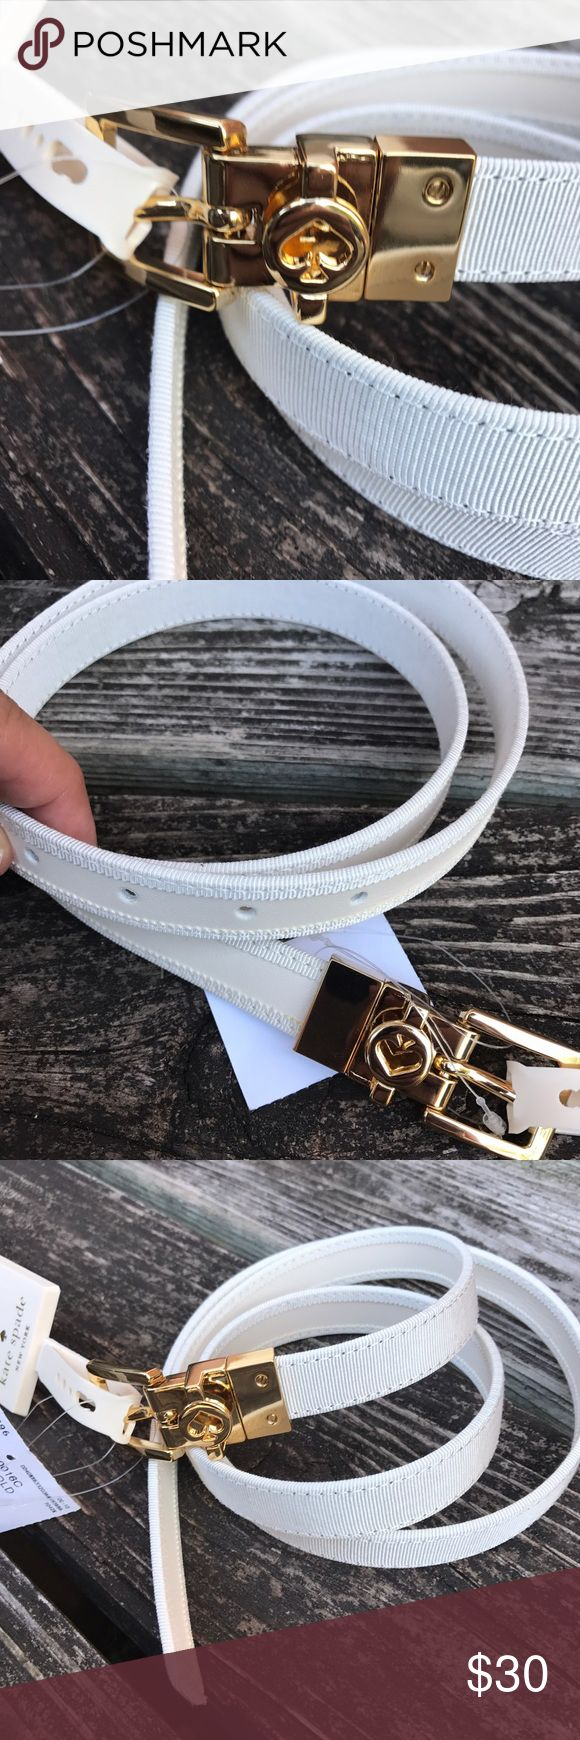 """Kate ♠️ Spade Reversible belt. Leather on one side/fabric on the other. Single prong buckle closure with signature Kate spade branding. Belt width 20 mm .. 32-36""""L kate spade Accessories Belts"""